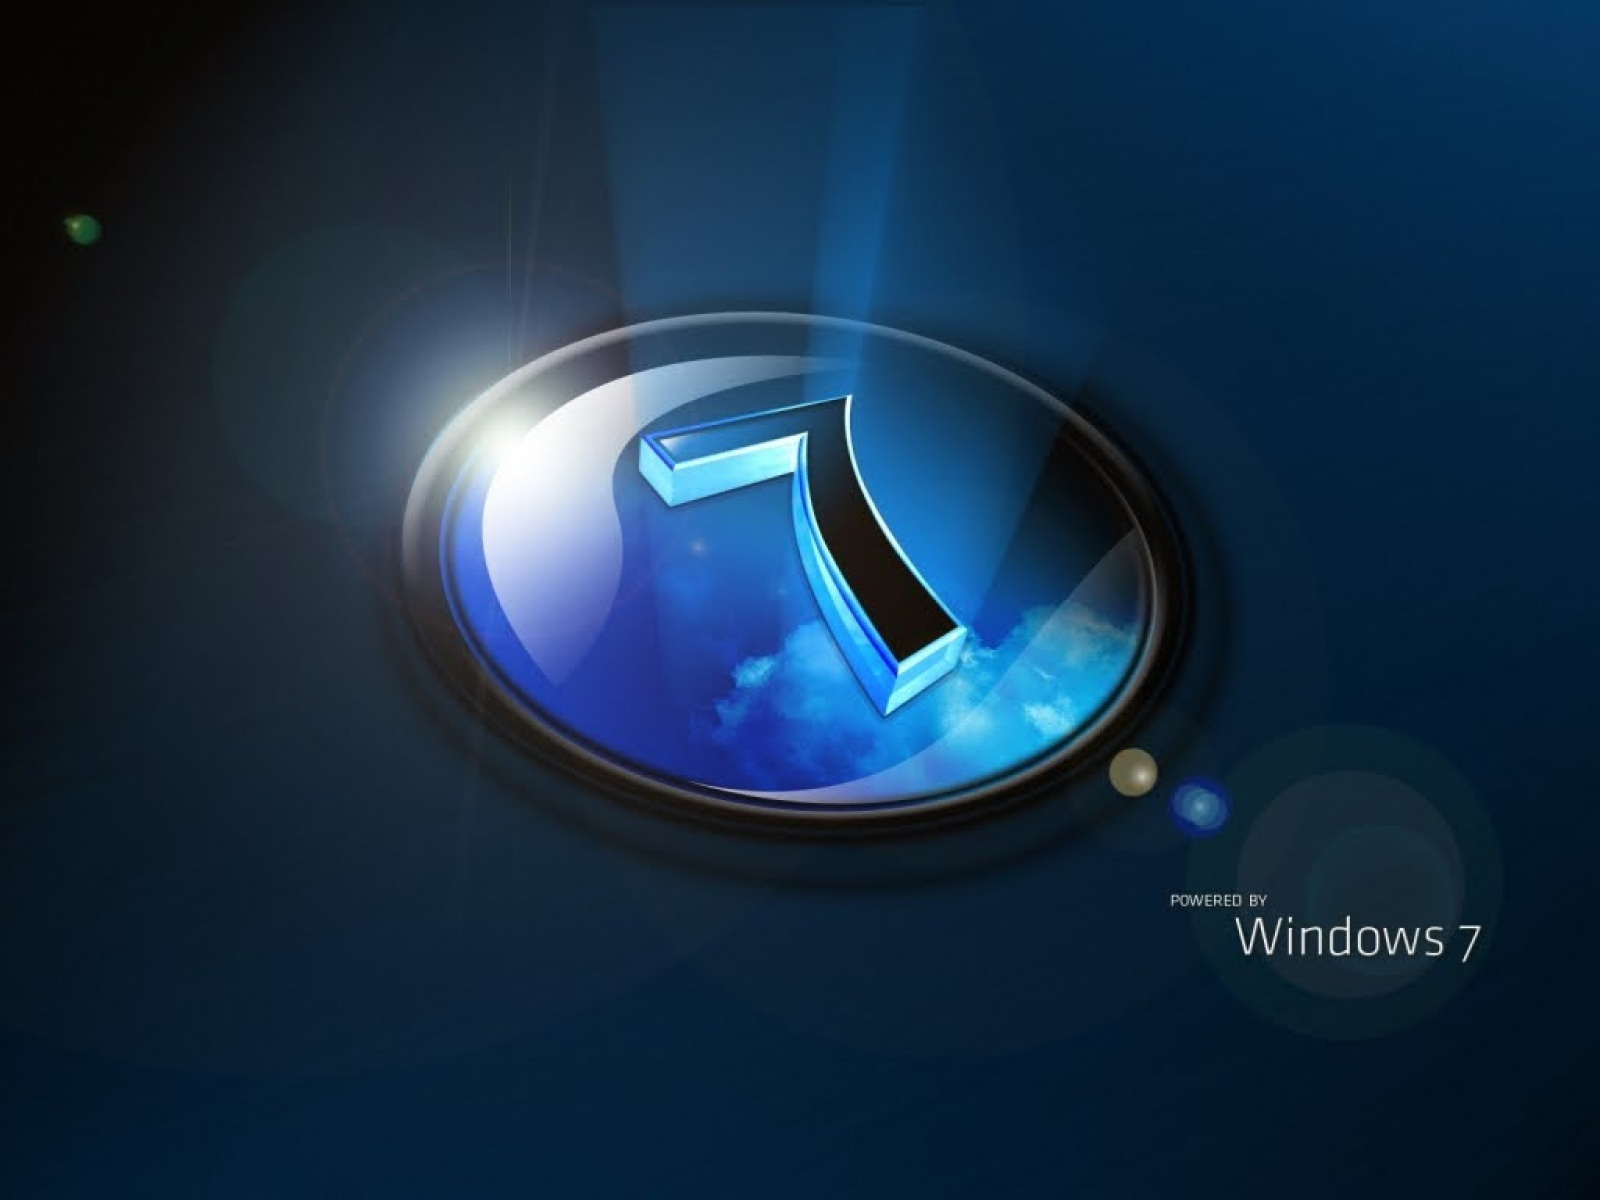 Windows 7 Whacked Wallpaper: Animated Wallpapers For Windows 7